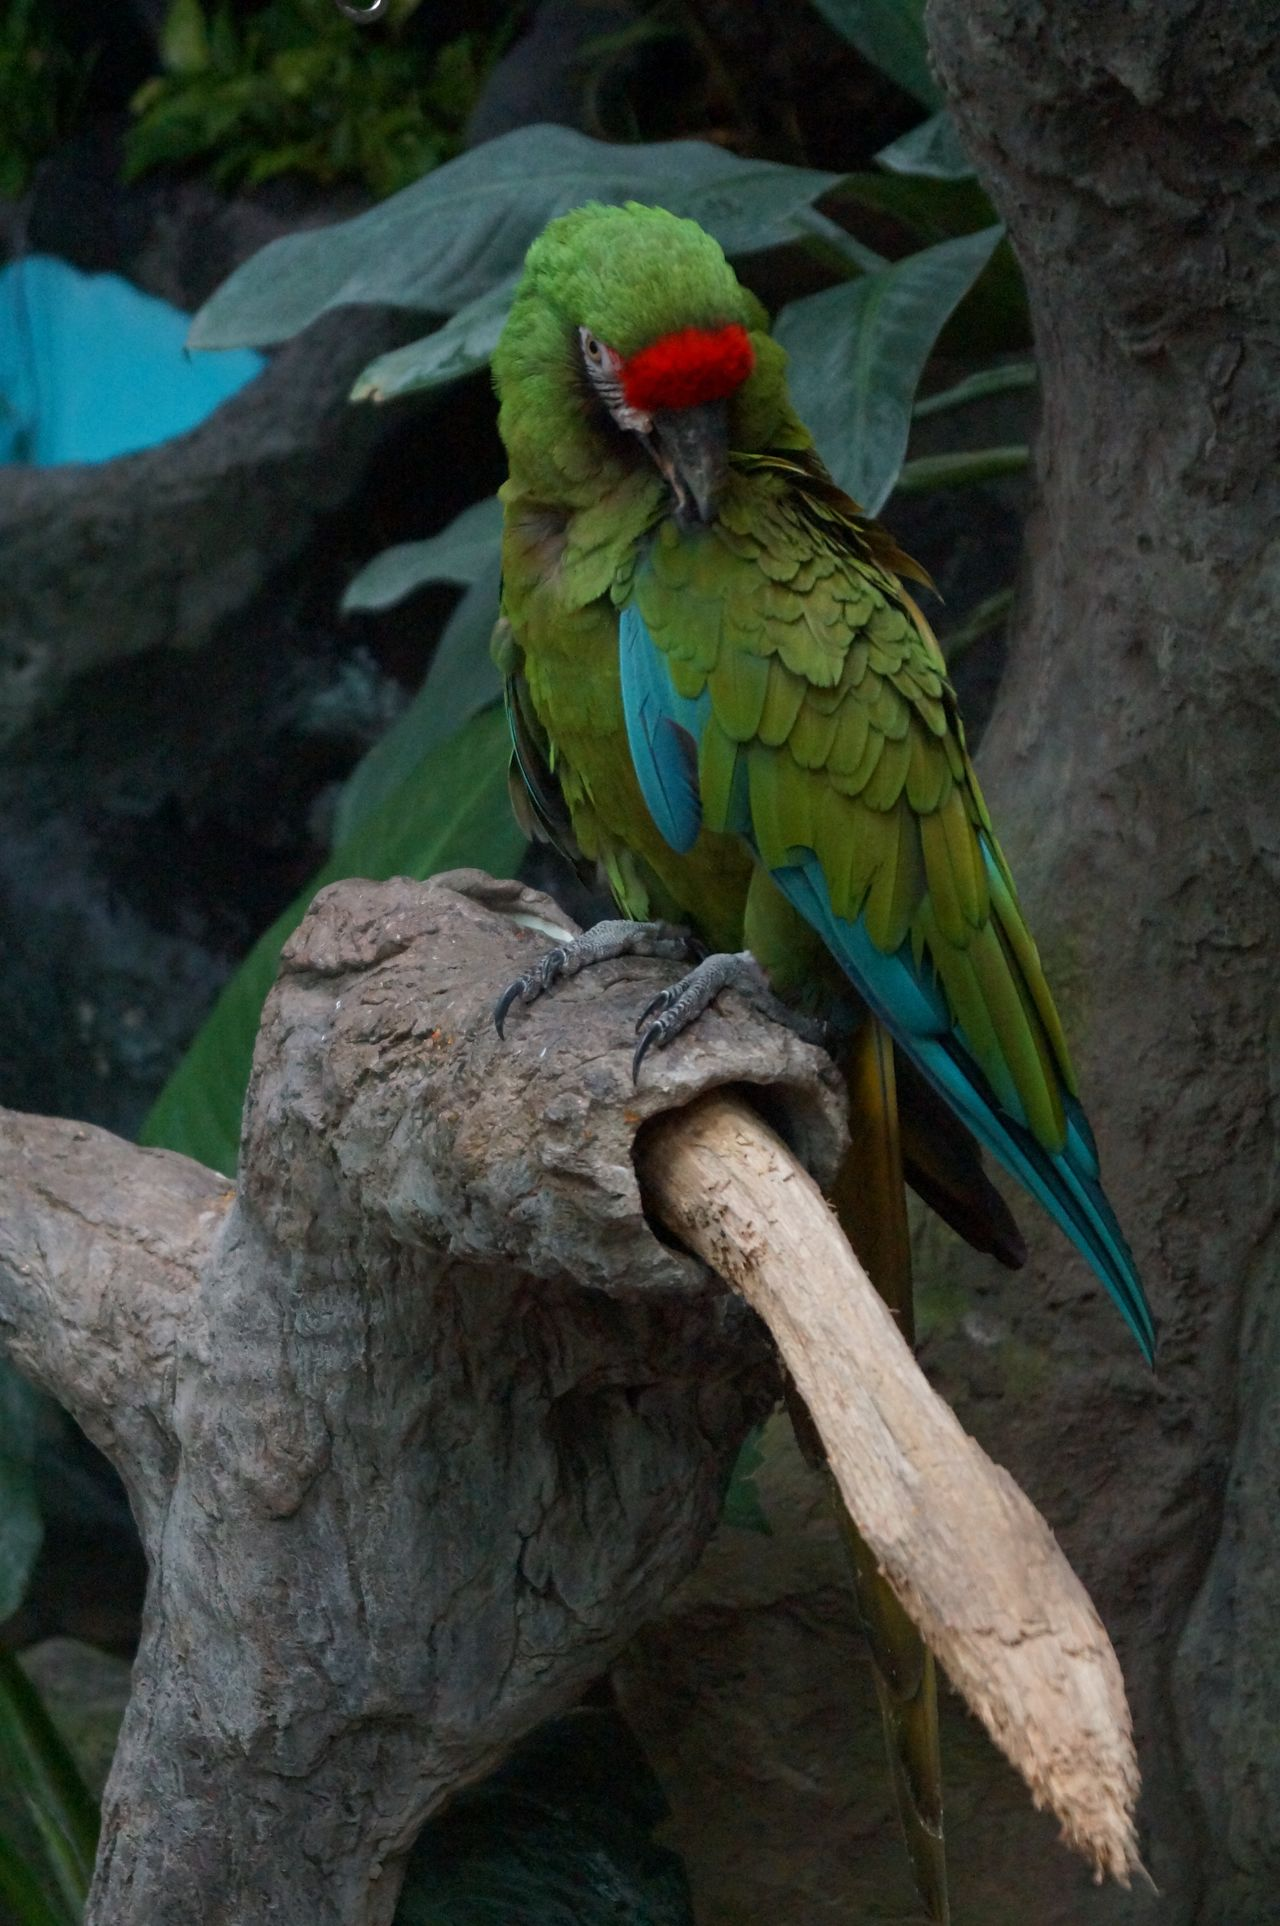 #animal #Azul #birds #Blue #captivity #green #guacamaya #macaw #naturecolors #park #Pets #verde